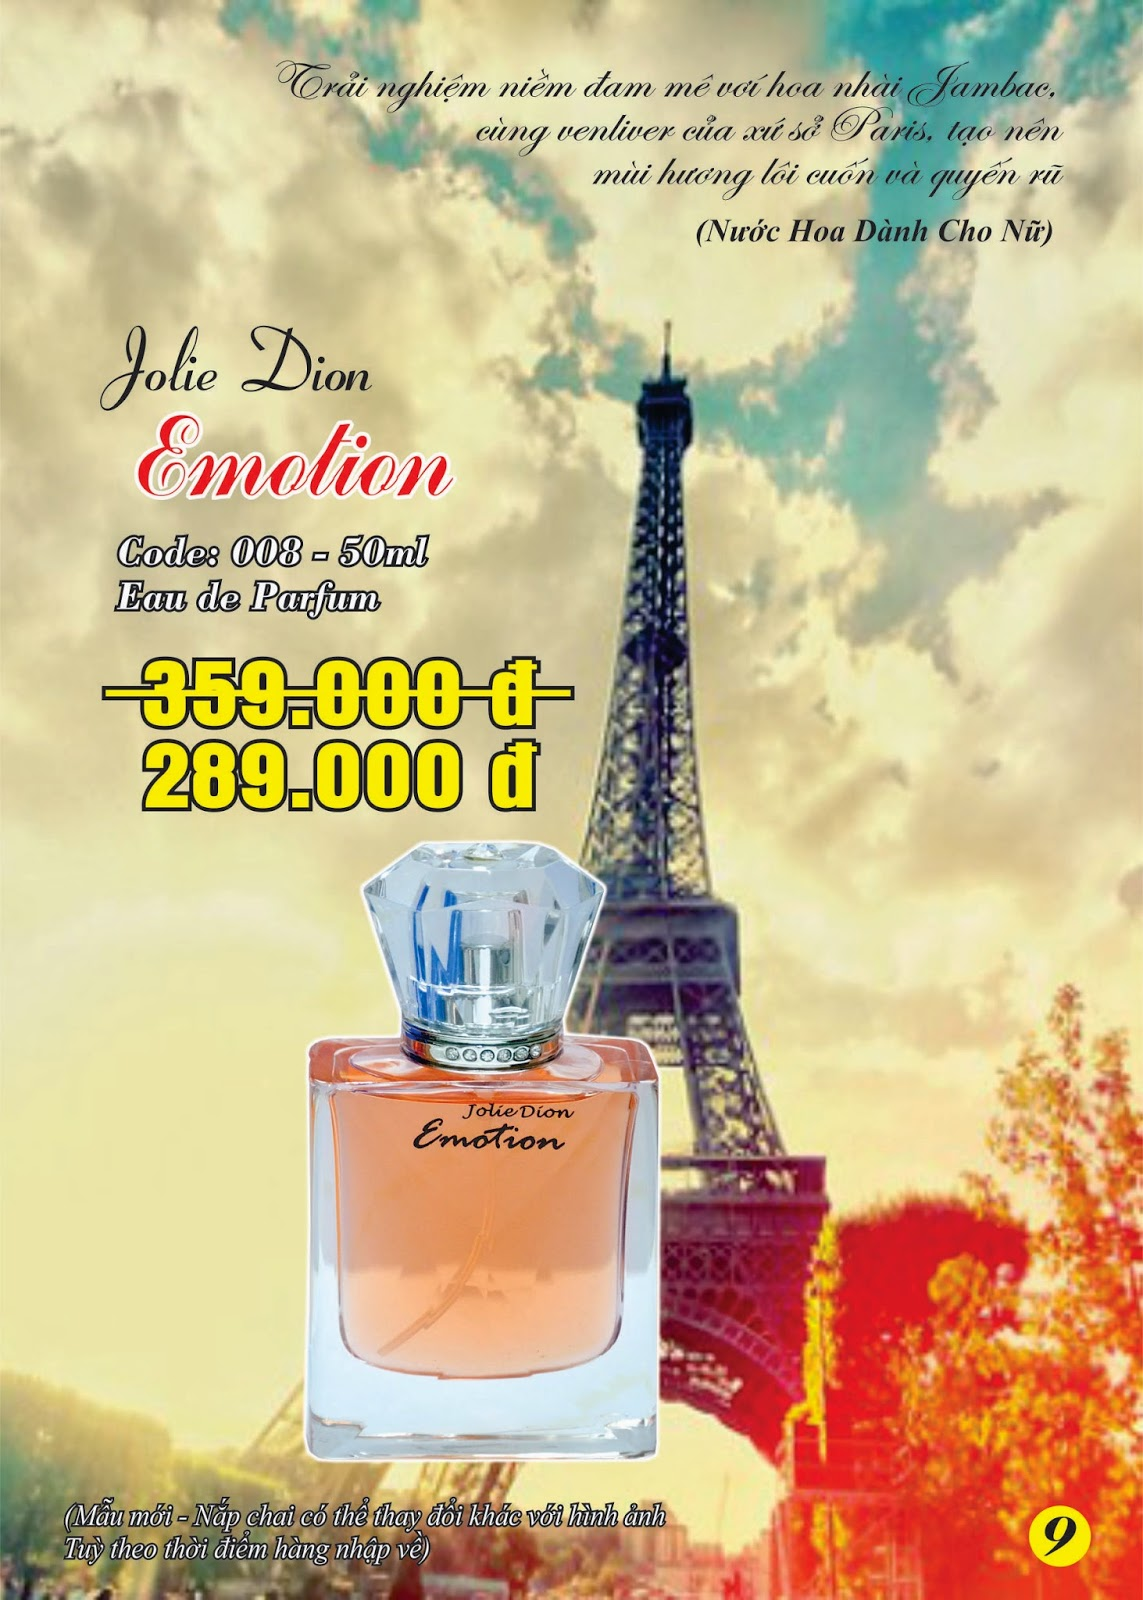 Jolie Dion Emotion For Women